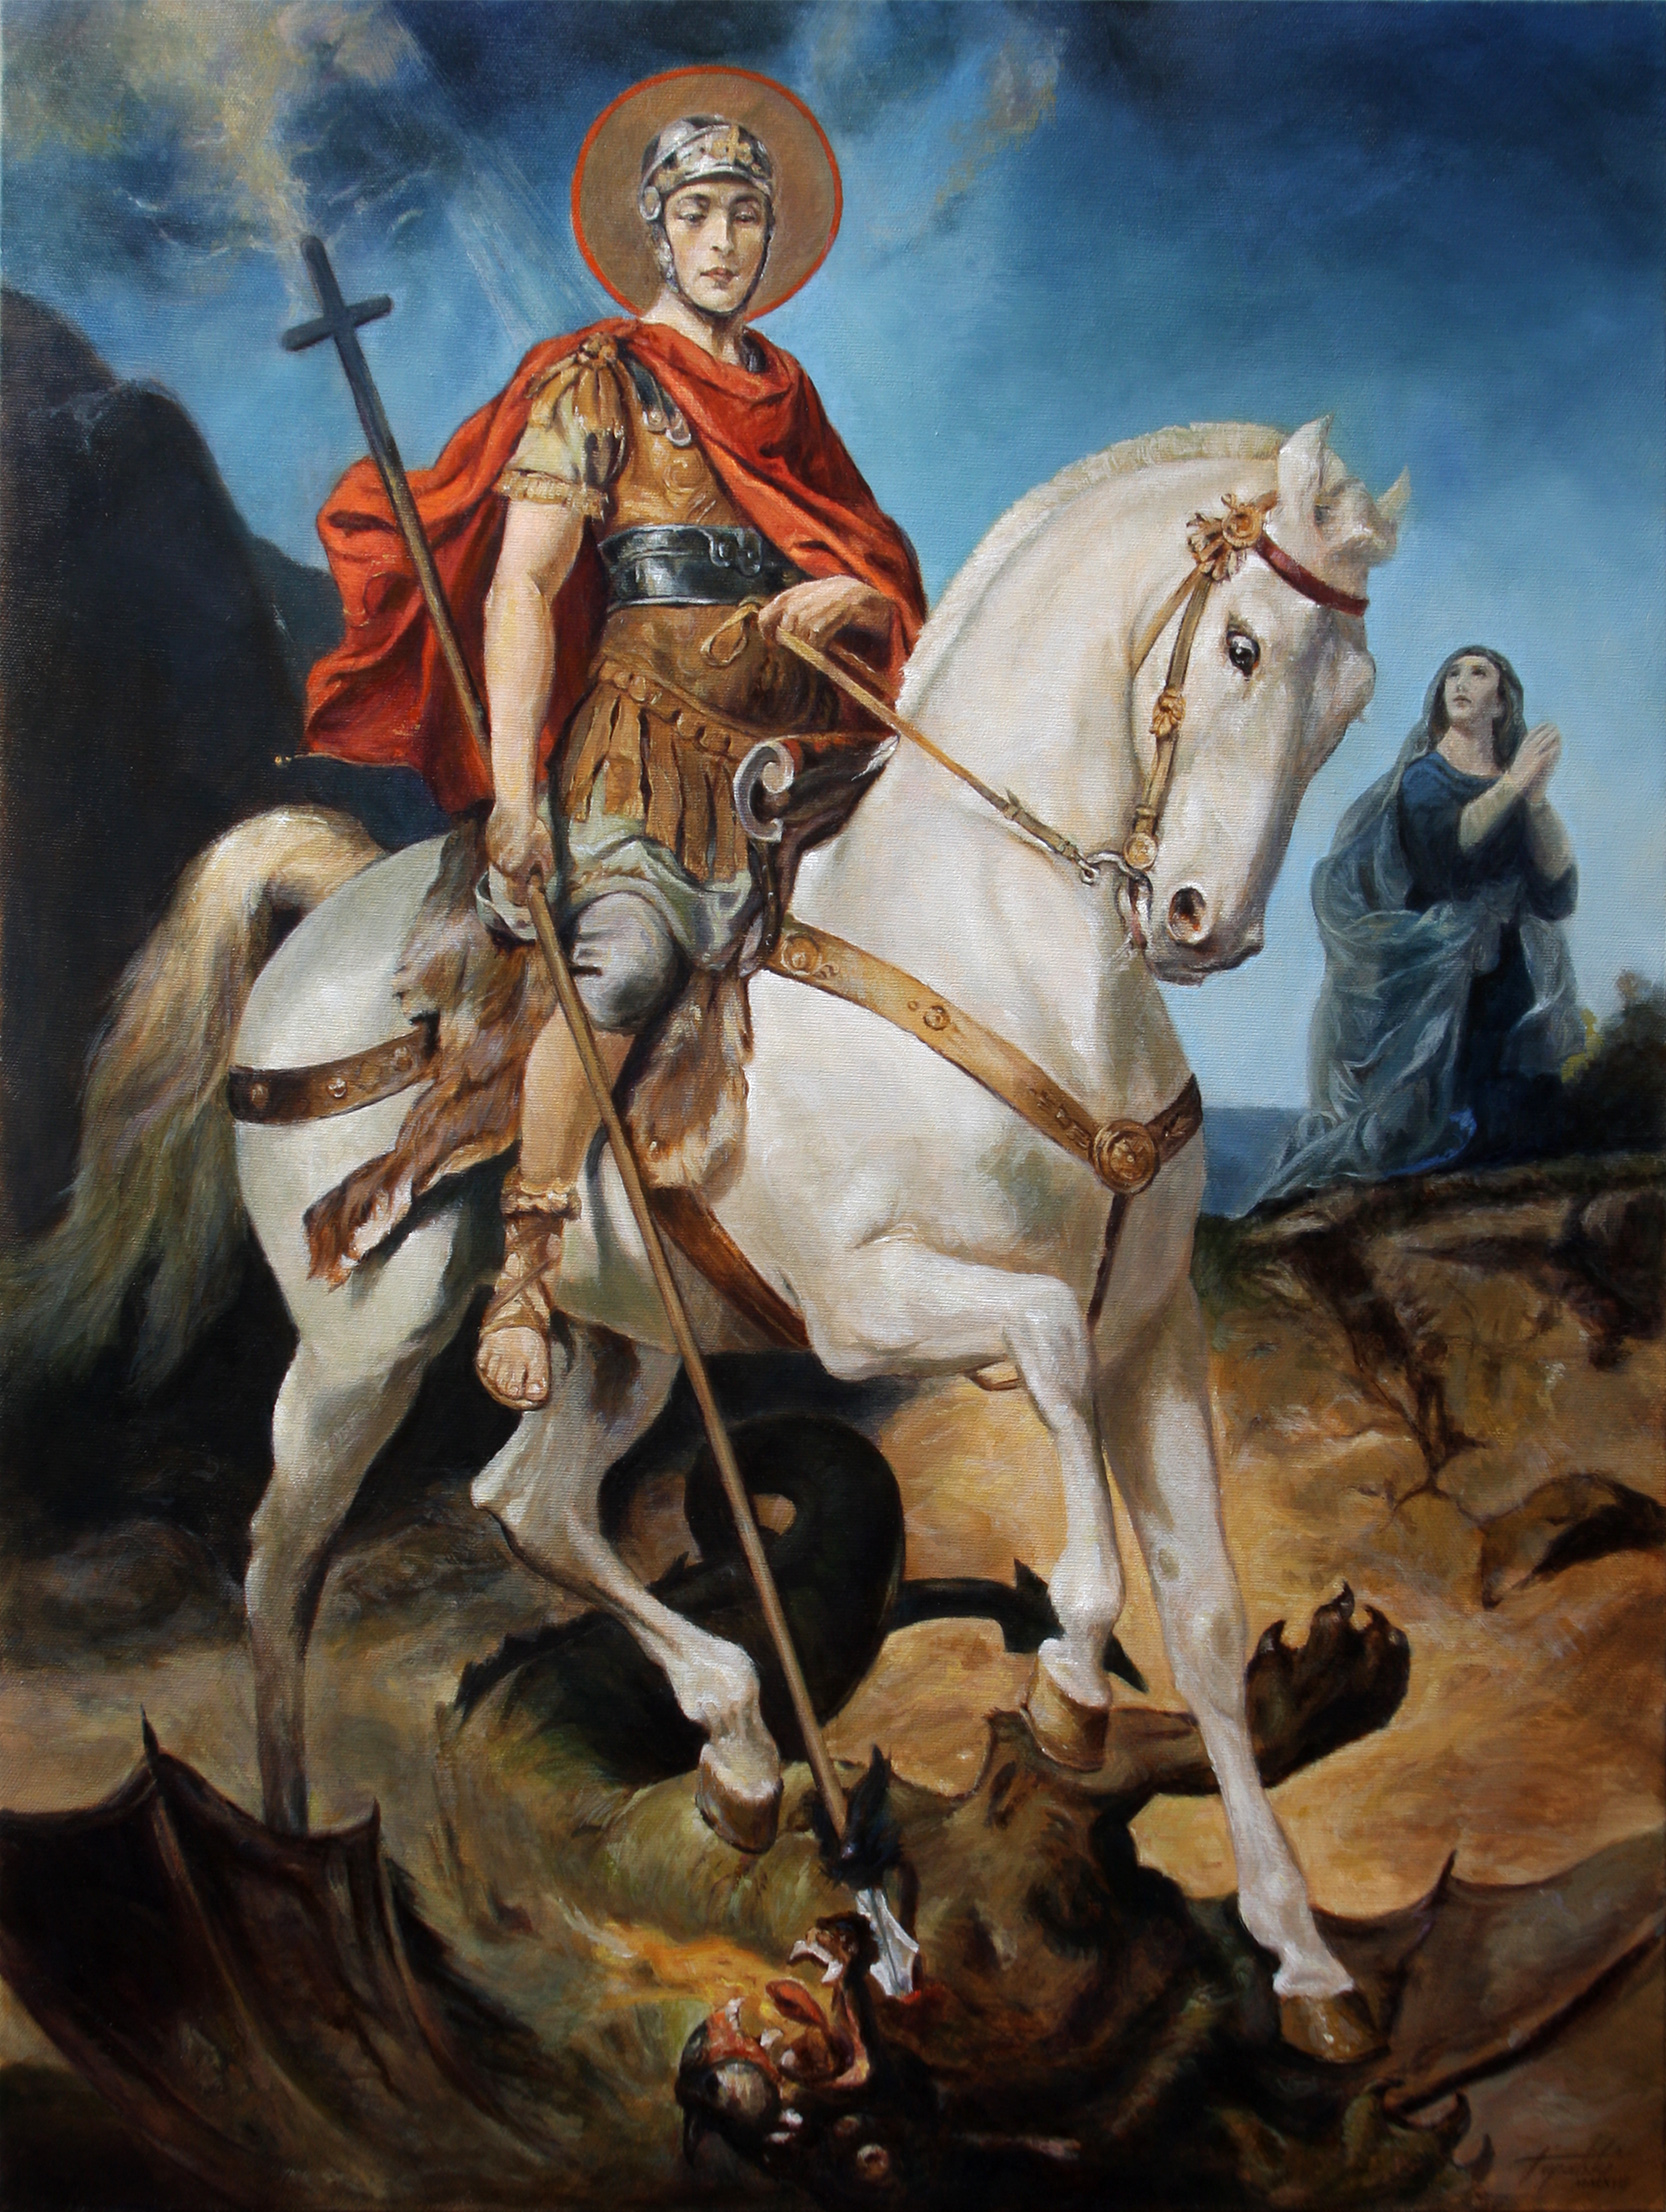 St George Dragons: Saint George And The Dragon